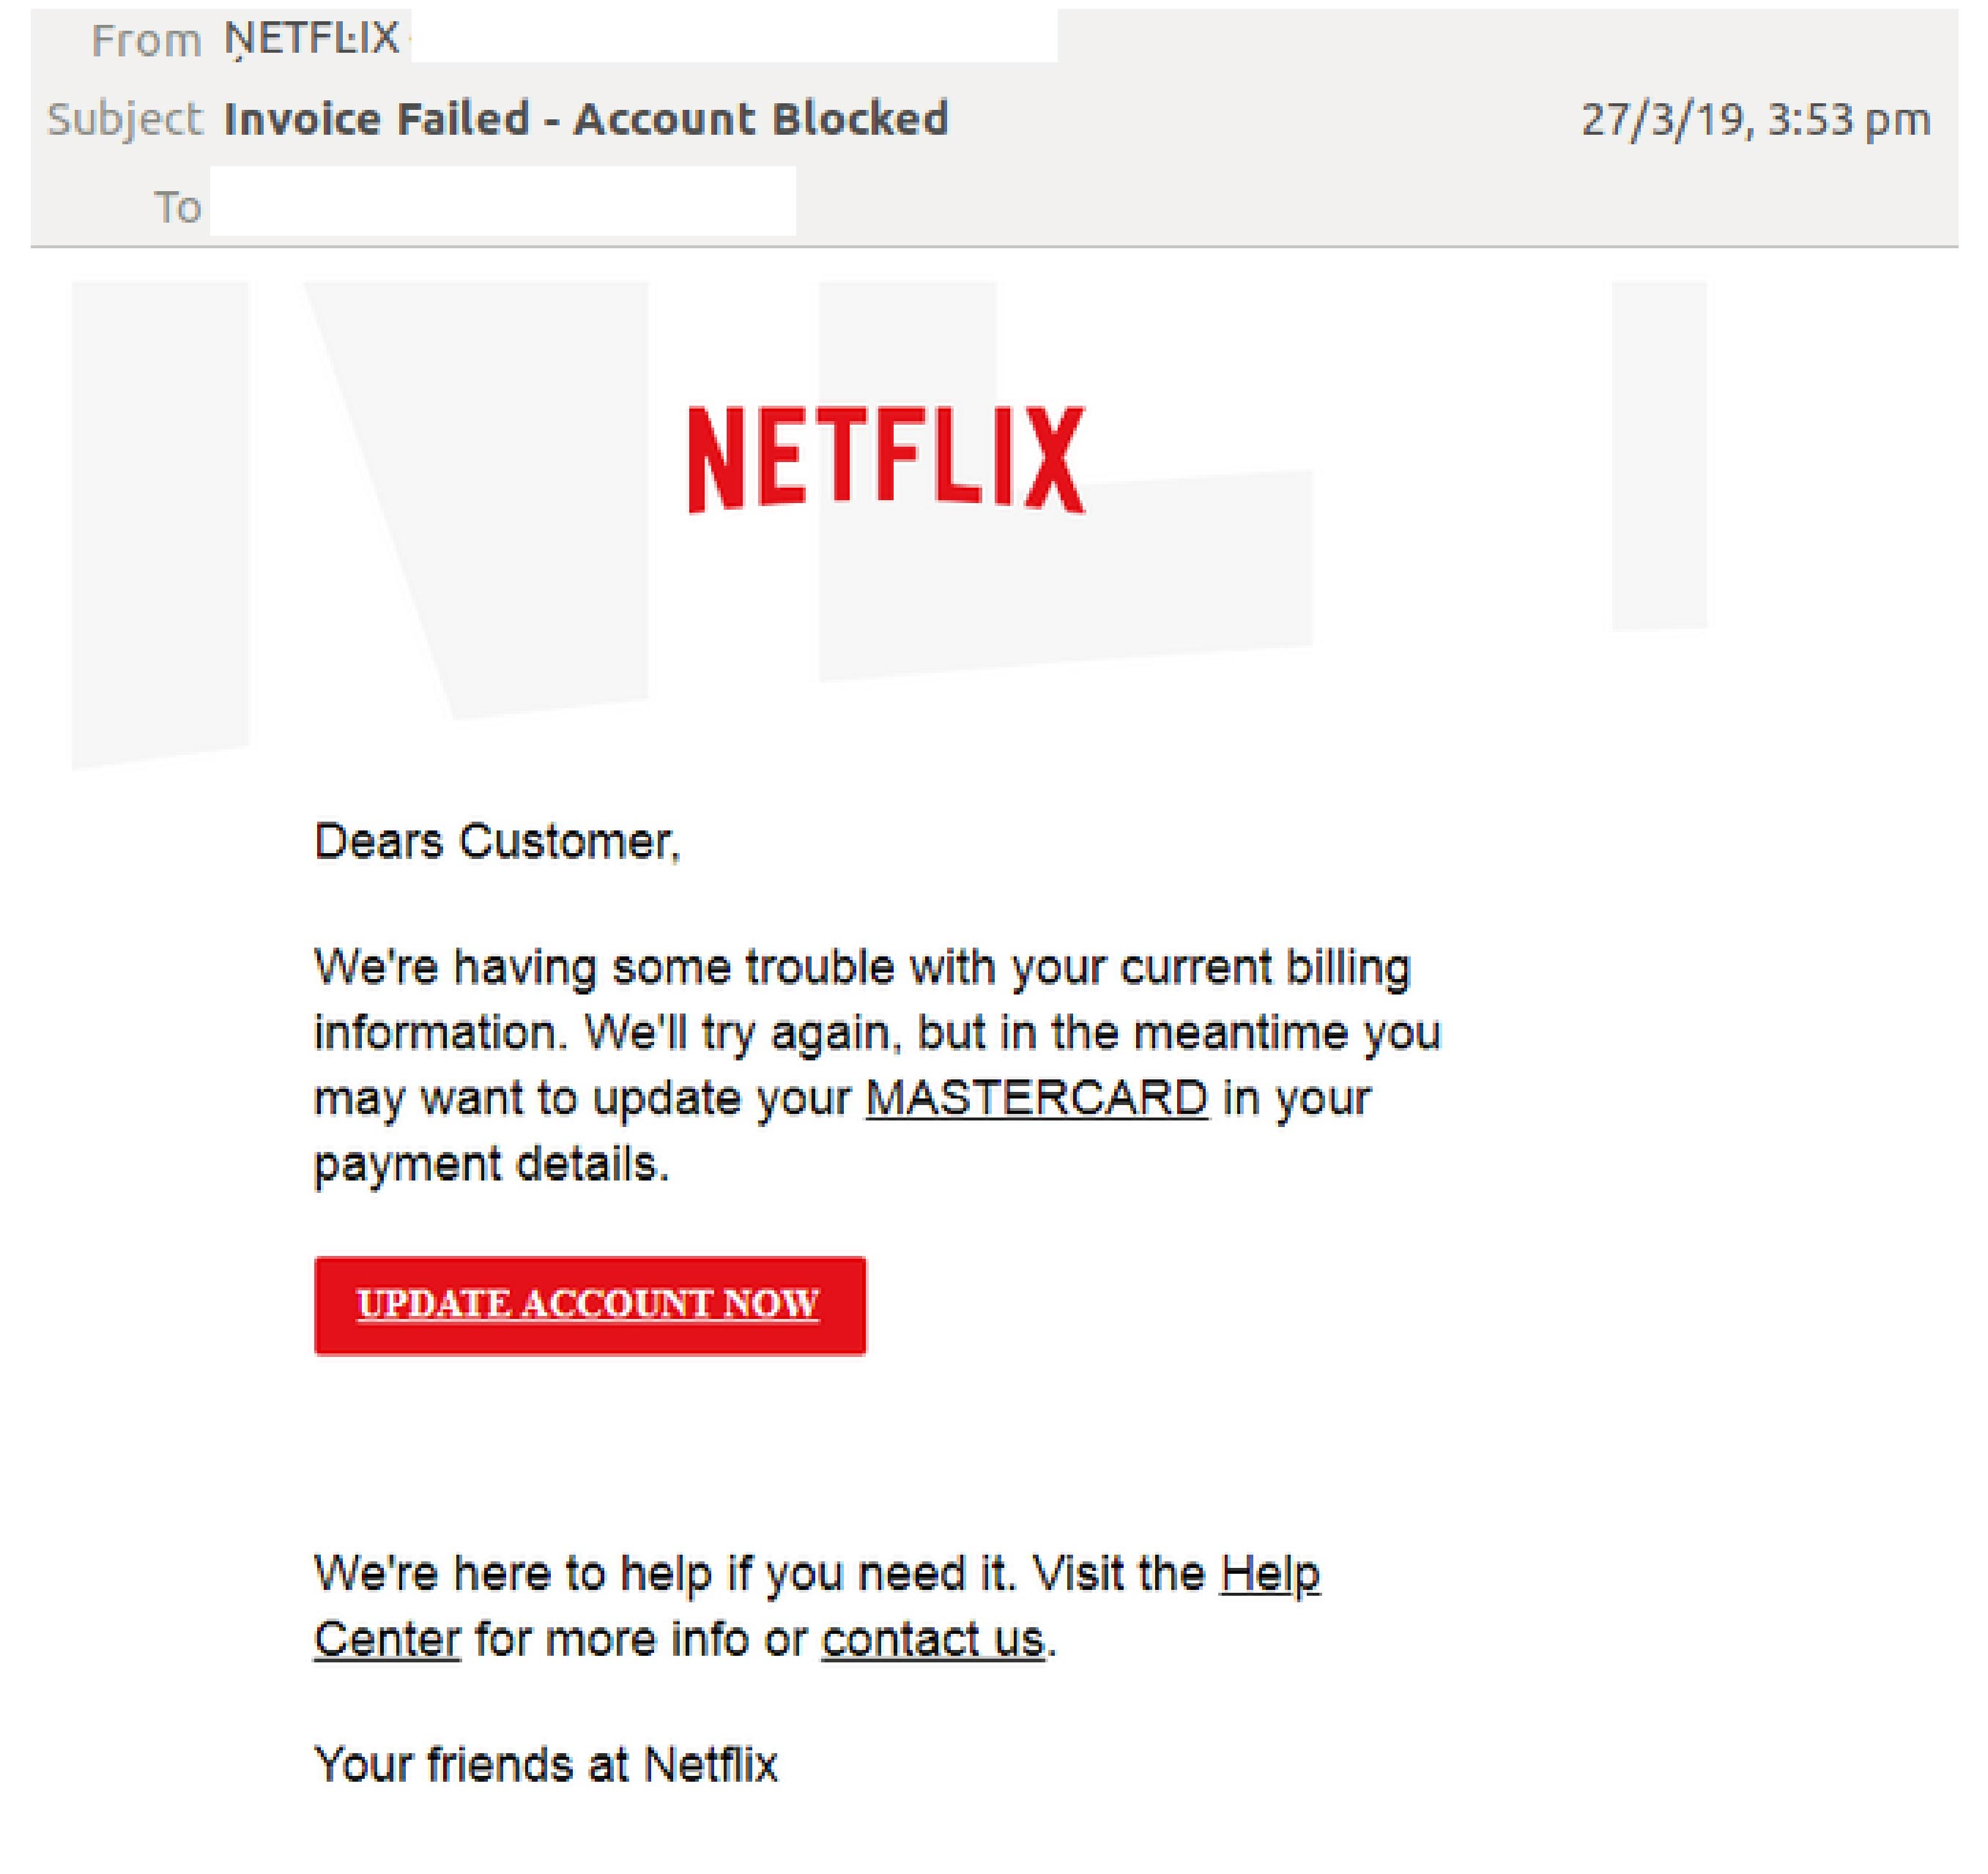 Netflix spoofed once again in phishing email scam